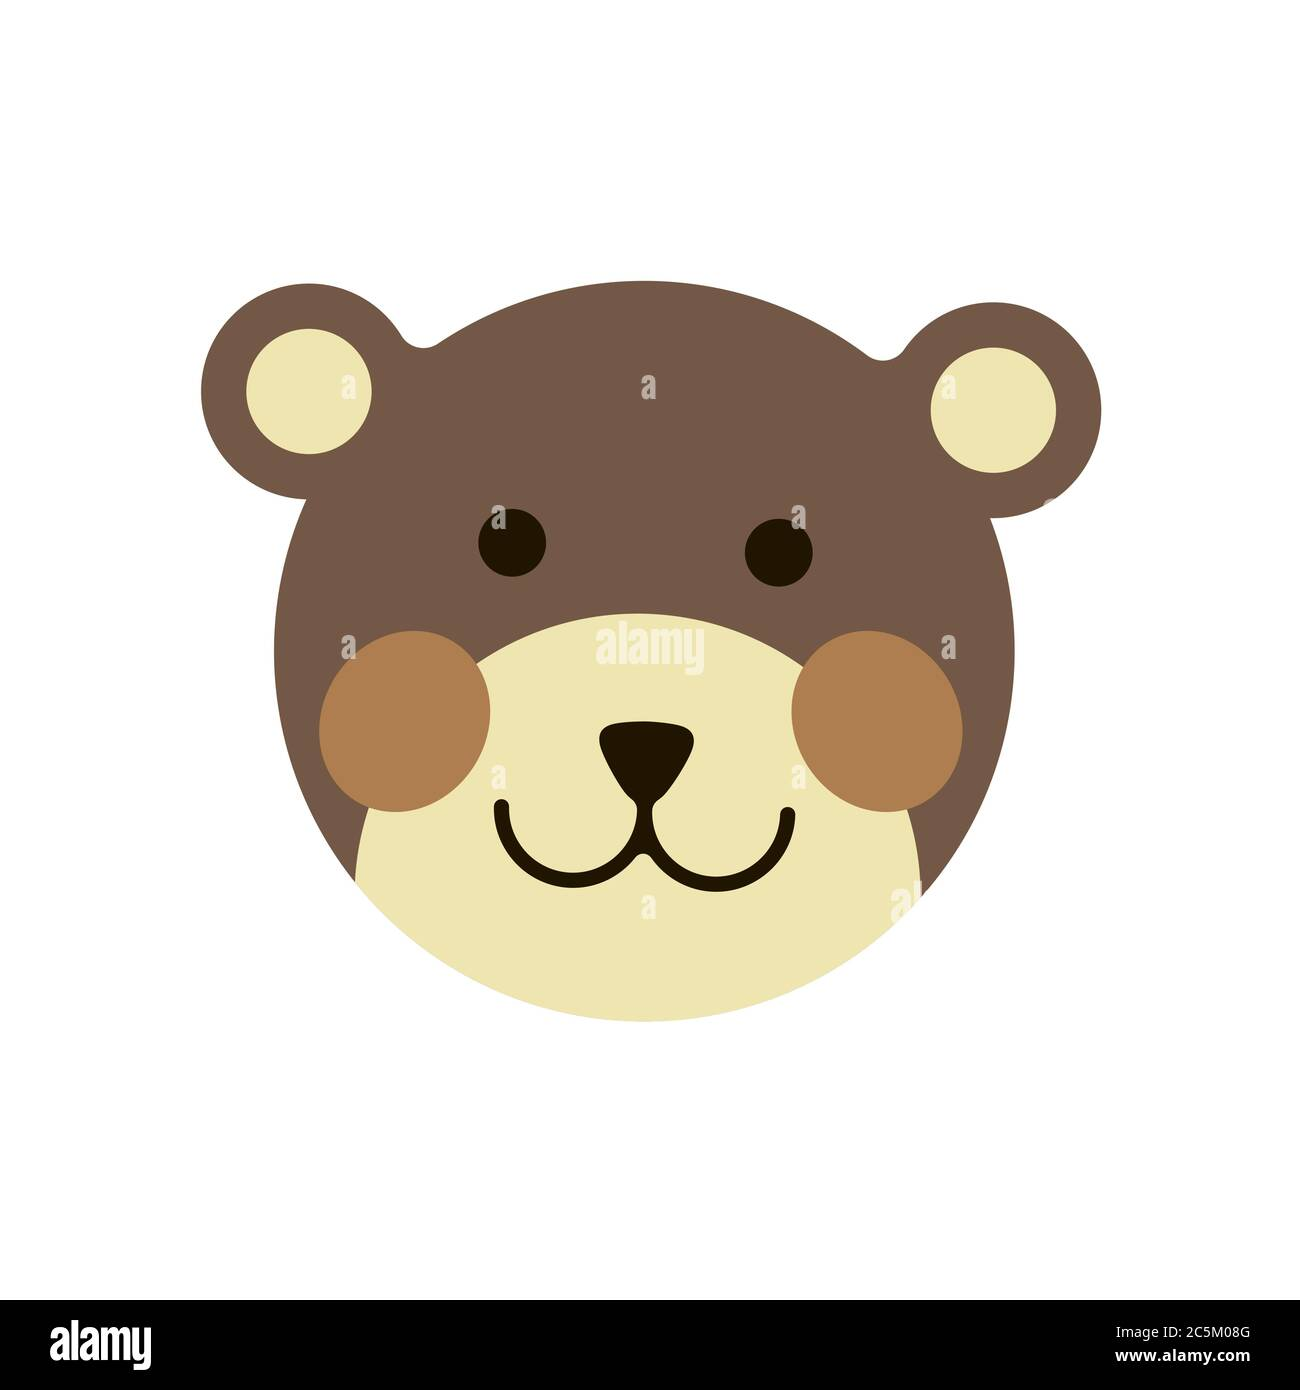 Illustration Of A Cute Cartoon Teddy Bear Holding A Blank Square.. Royalty  Free Cliparts, Vectors, And Stock Illustration. Image 42150525.